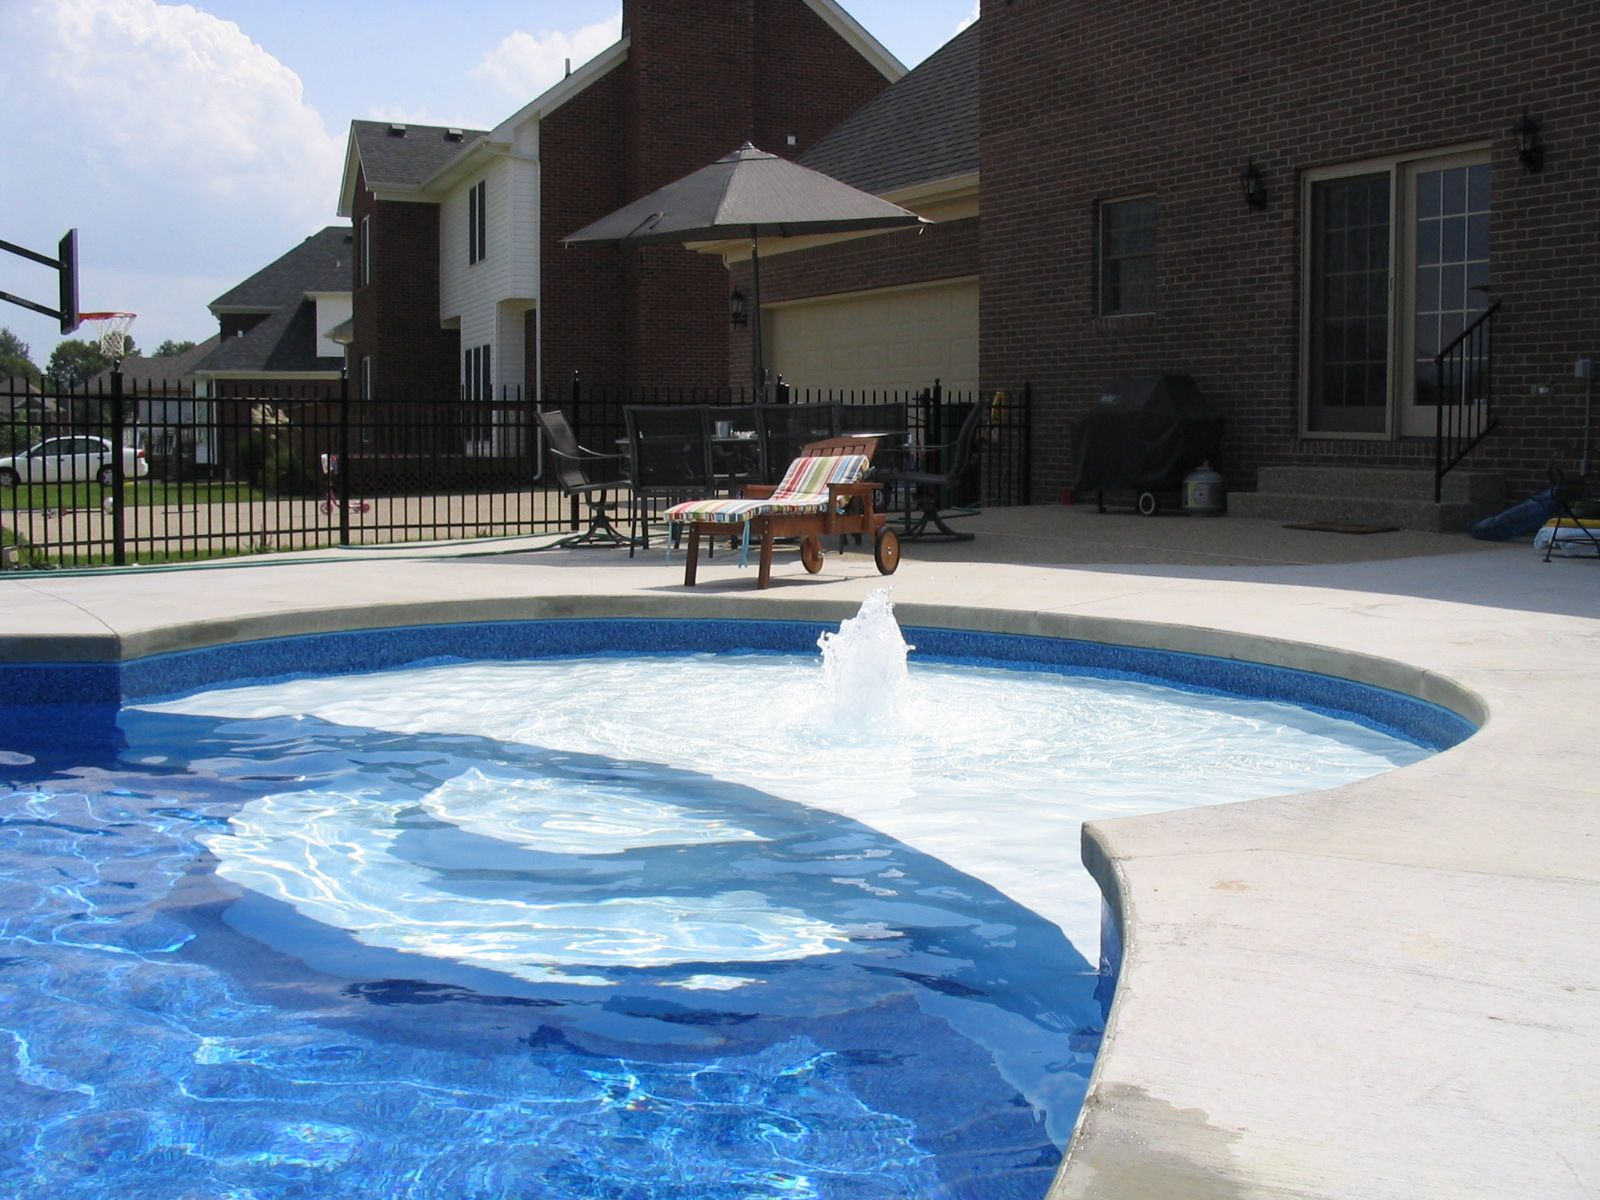 CL vinyl liner pool with a sundeck and wedding cake steps